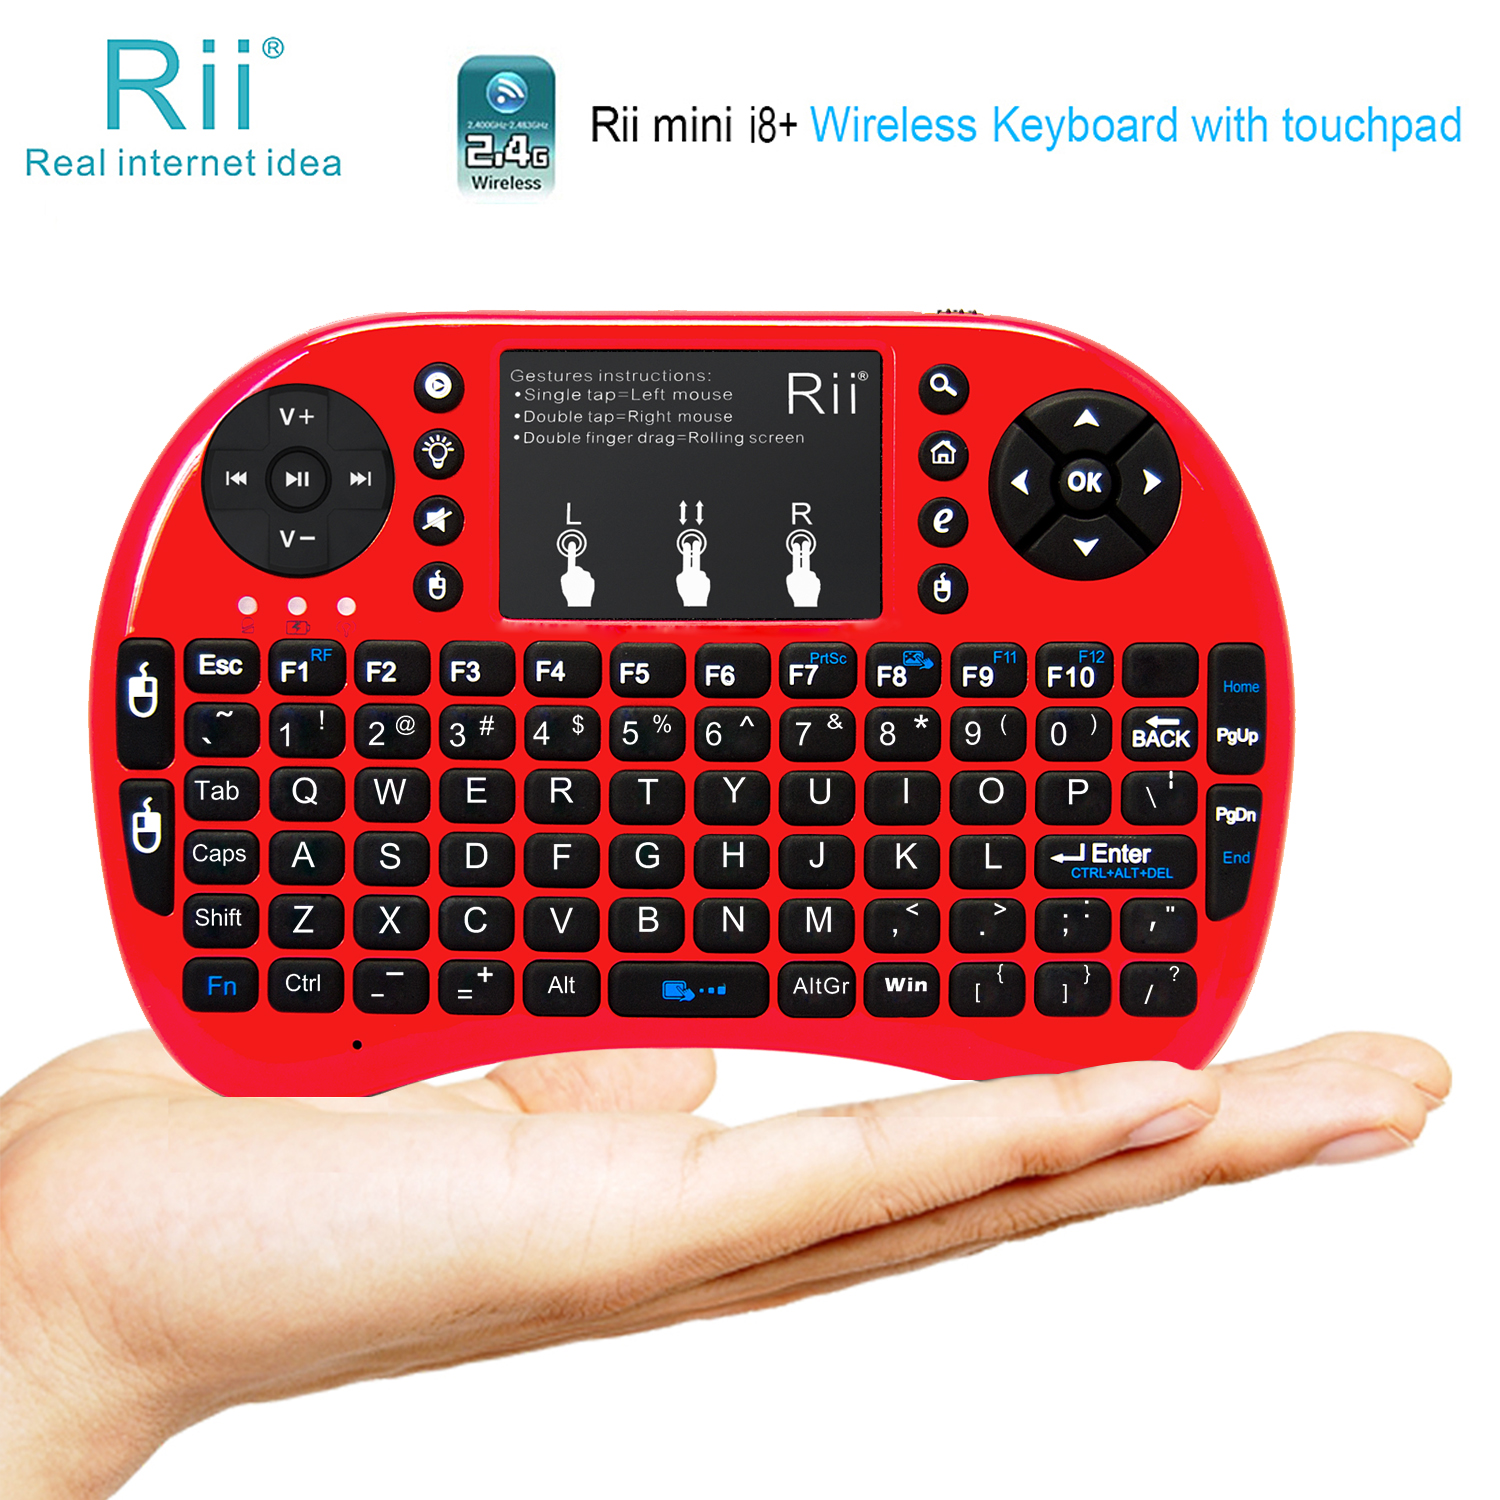 Rii mini i8+Wireless Keyboard with Touchpad,LED Backlit, Rechargable Li-ion Battery,Soft Silicone for KODI, Raspberry Pi 2/3,Mac OS,Linux,HTPC,IPTV,Android TV Box?Windows/BL